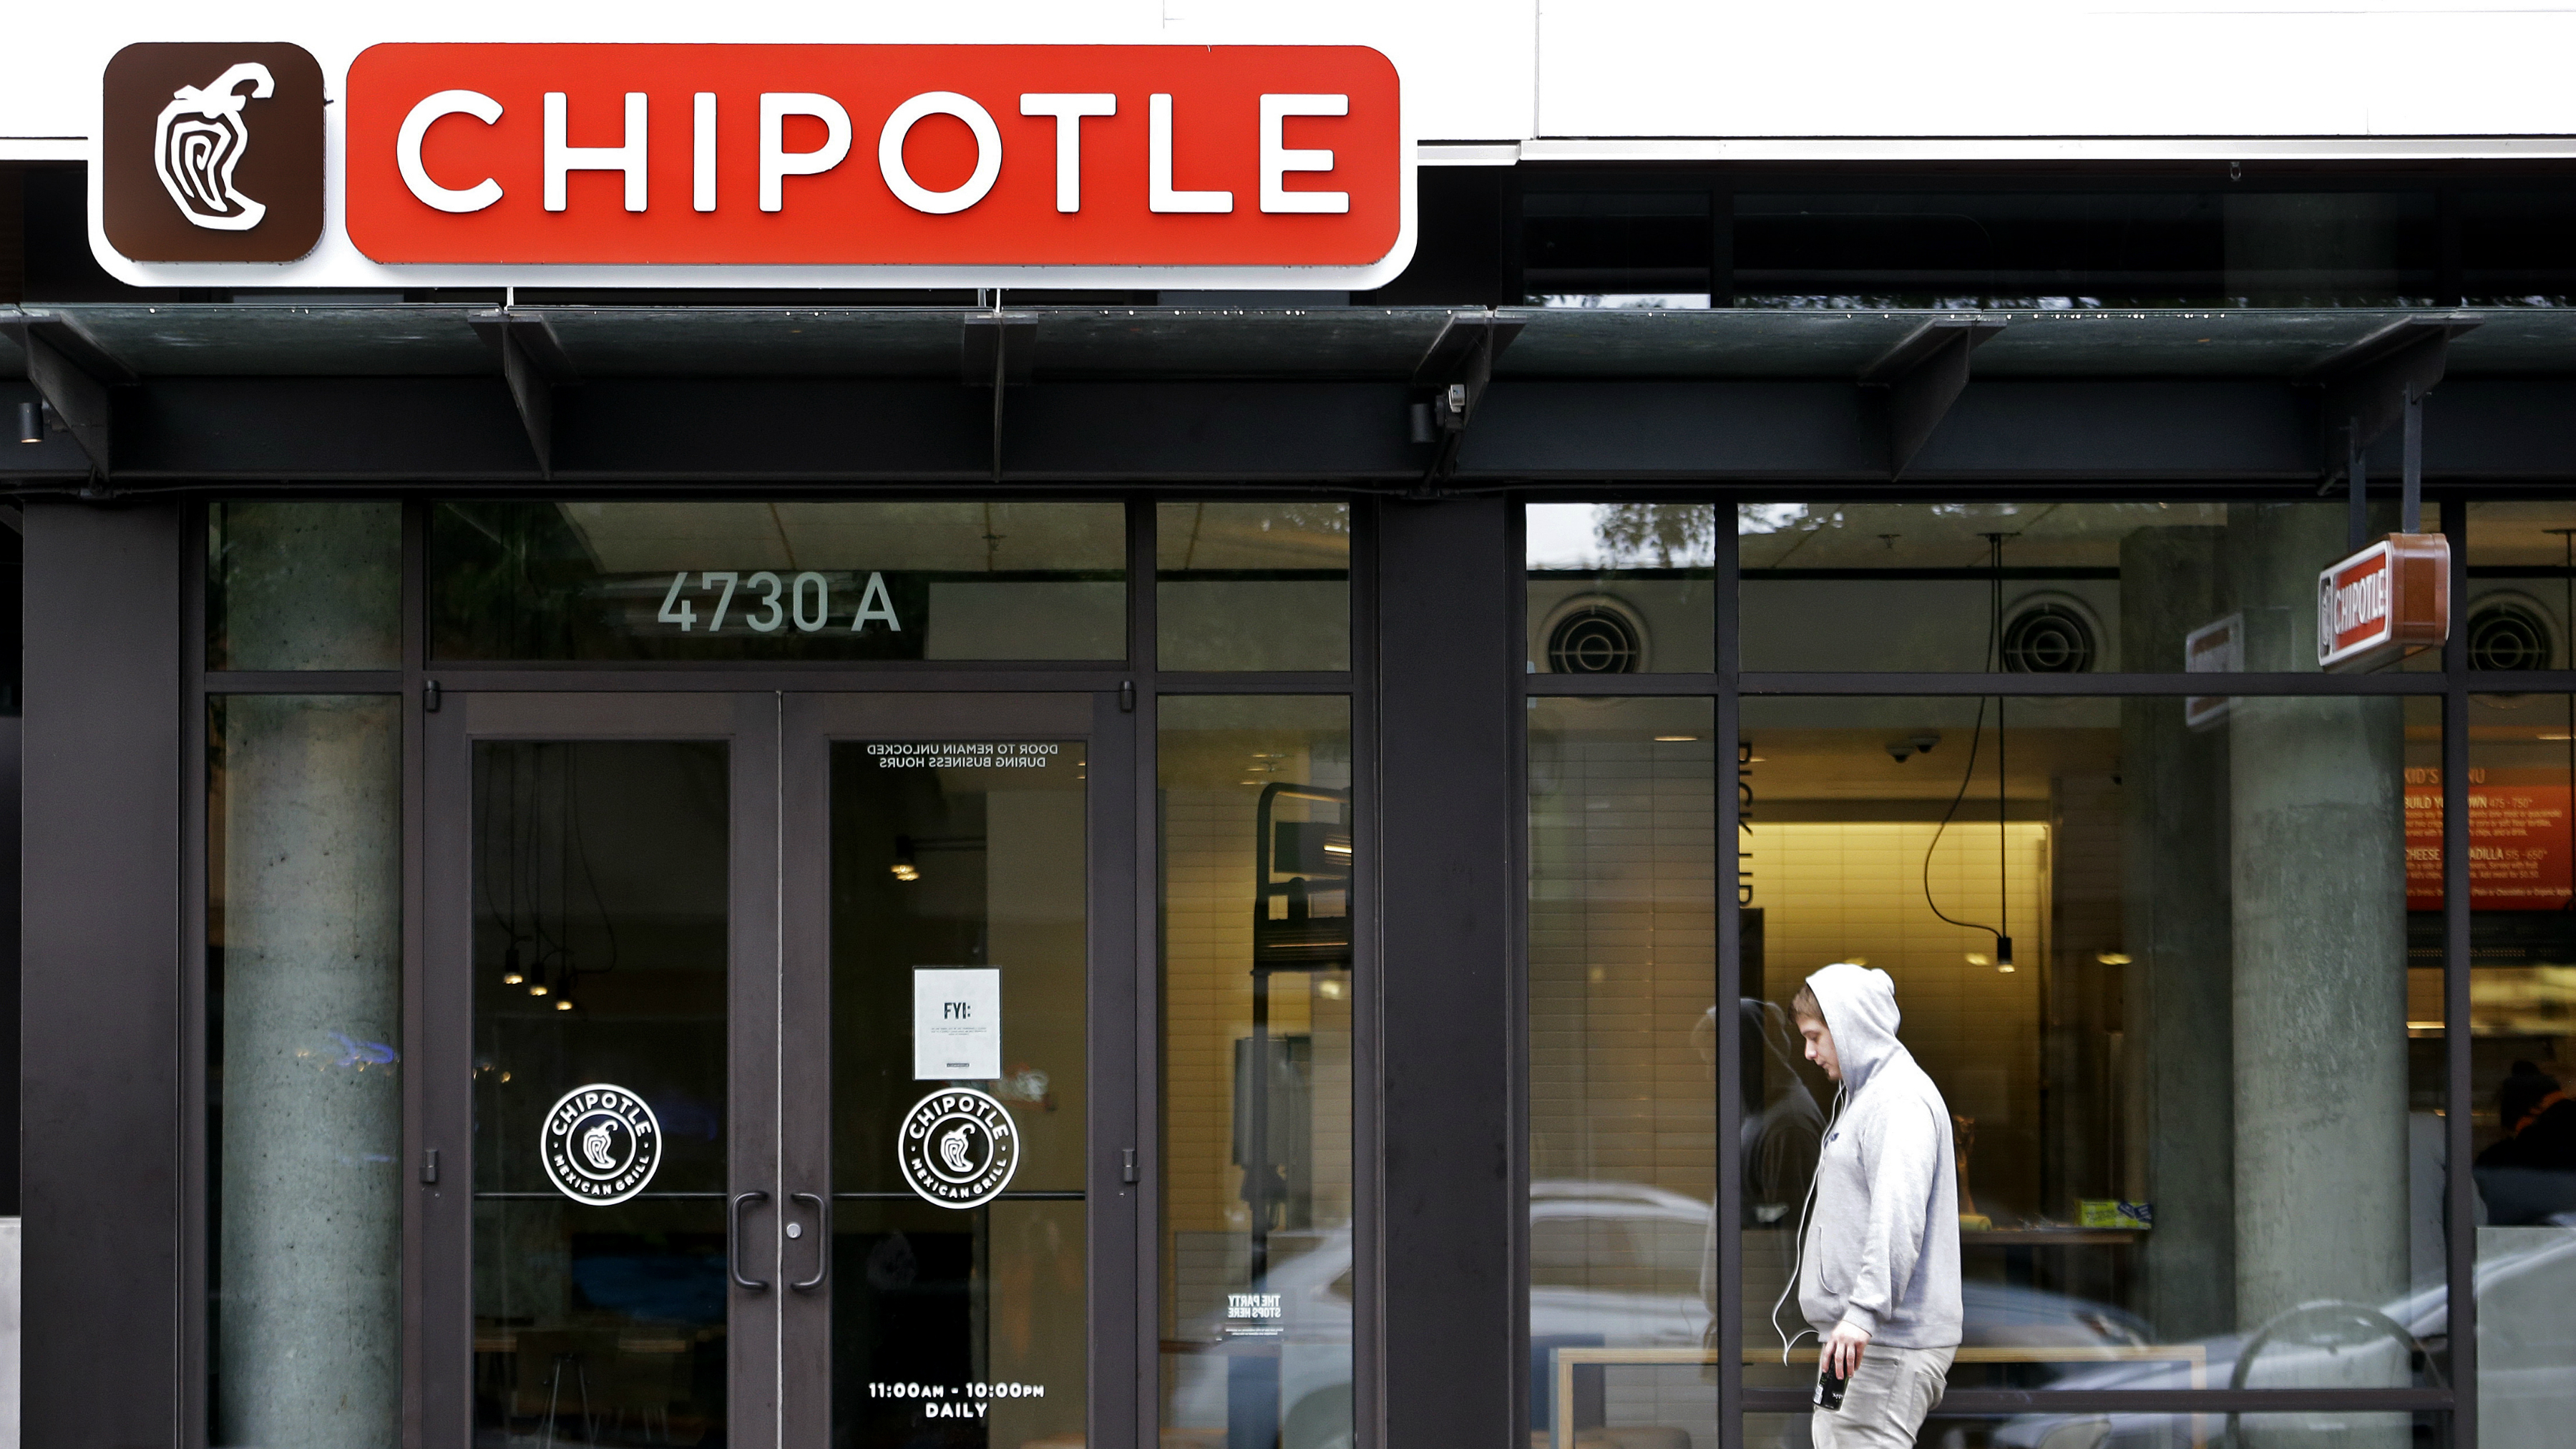 chipotle-ecoli-food-with-integrity